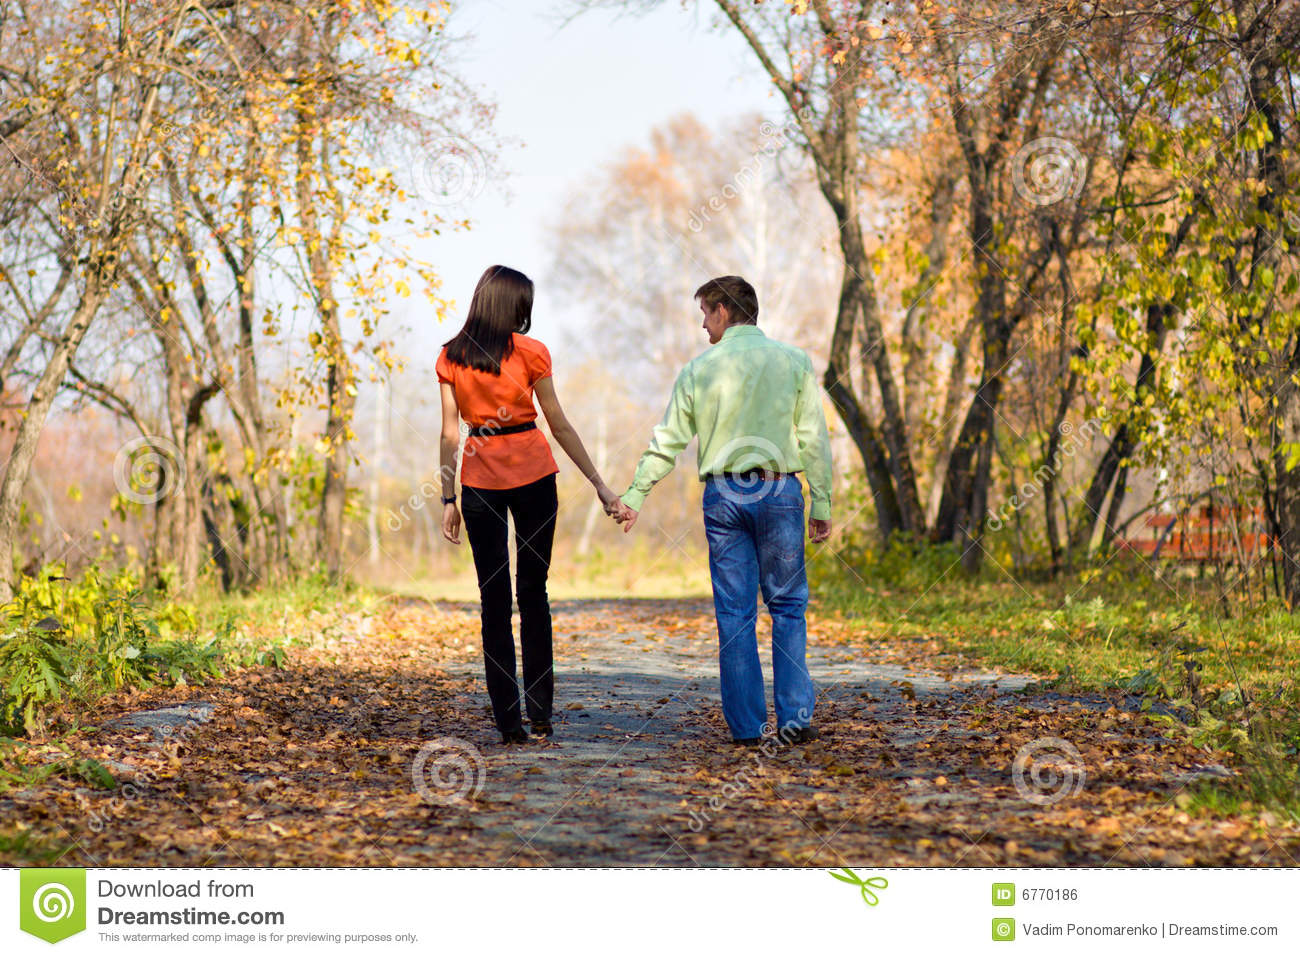 Royalty Free Stock Image  Young couple walking in the parkYoung Couple Walking In The Park